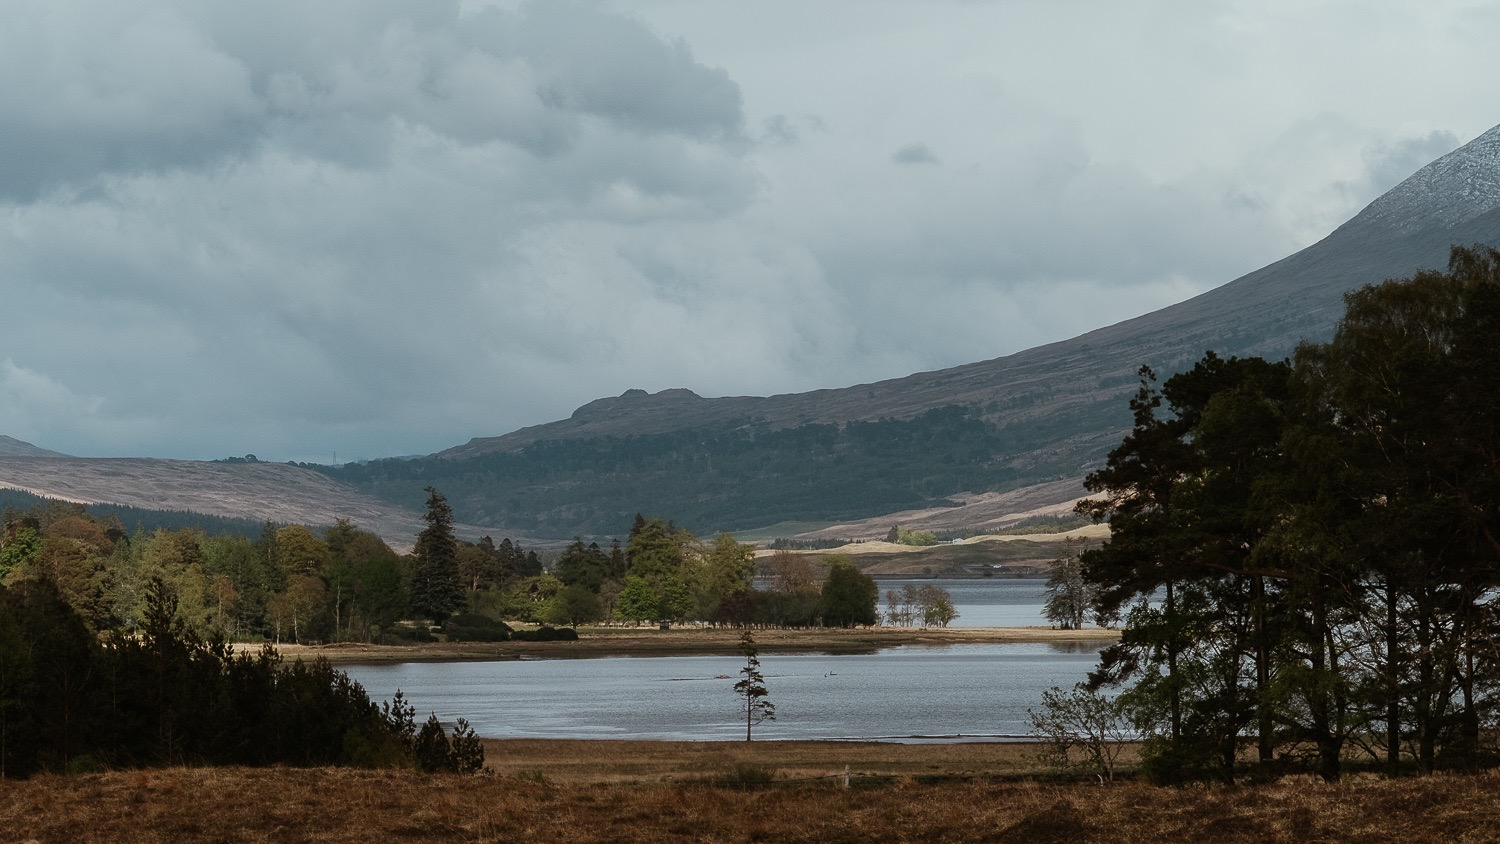 0014-scotland-tamron-le monde de la photo-paysage-20190507174402-compress.jpg